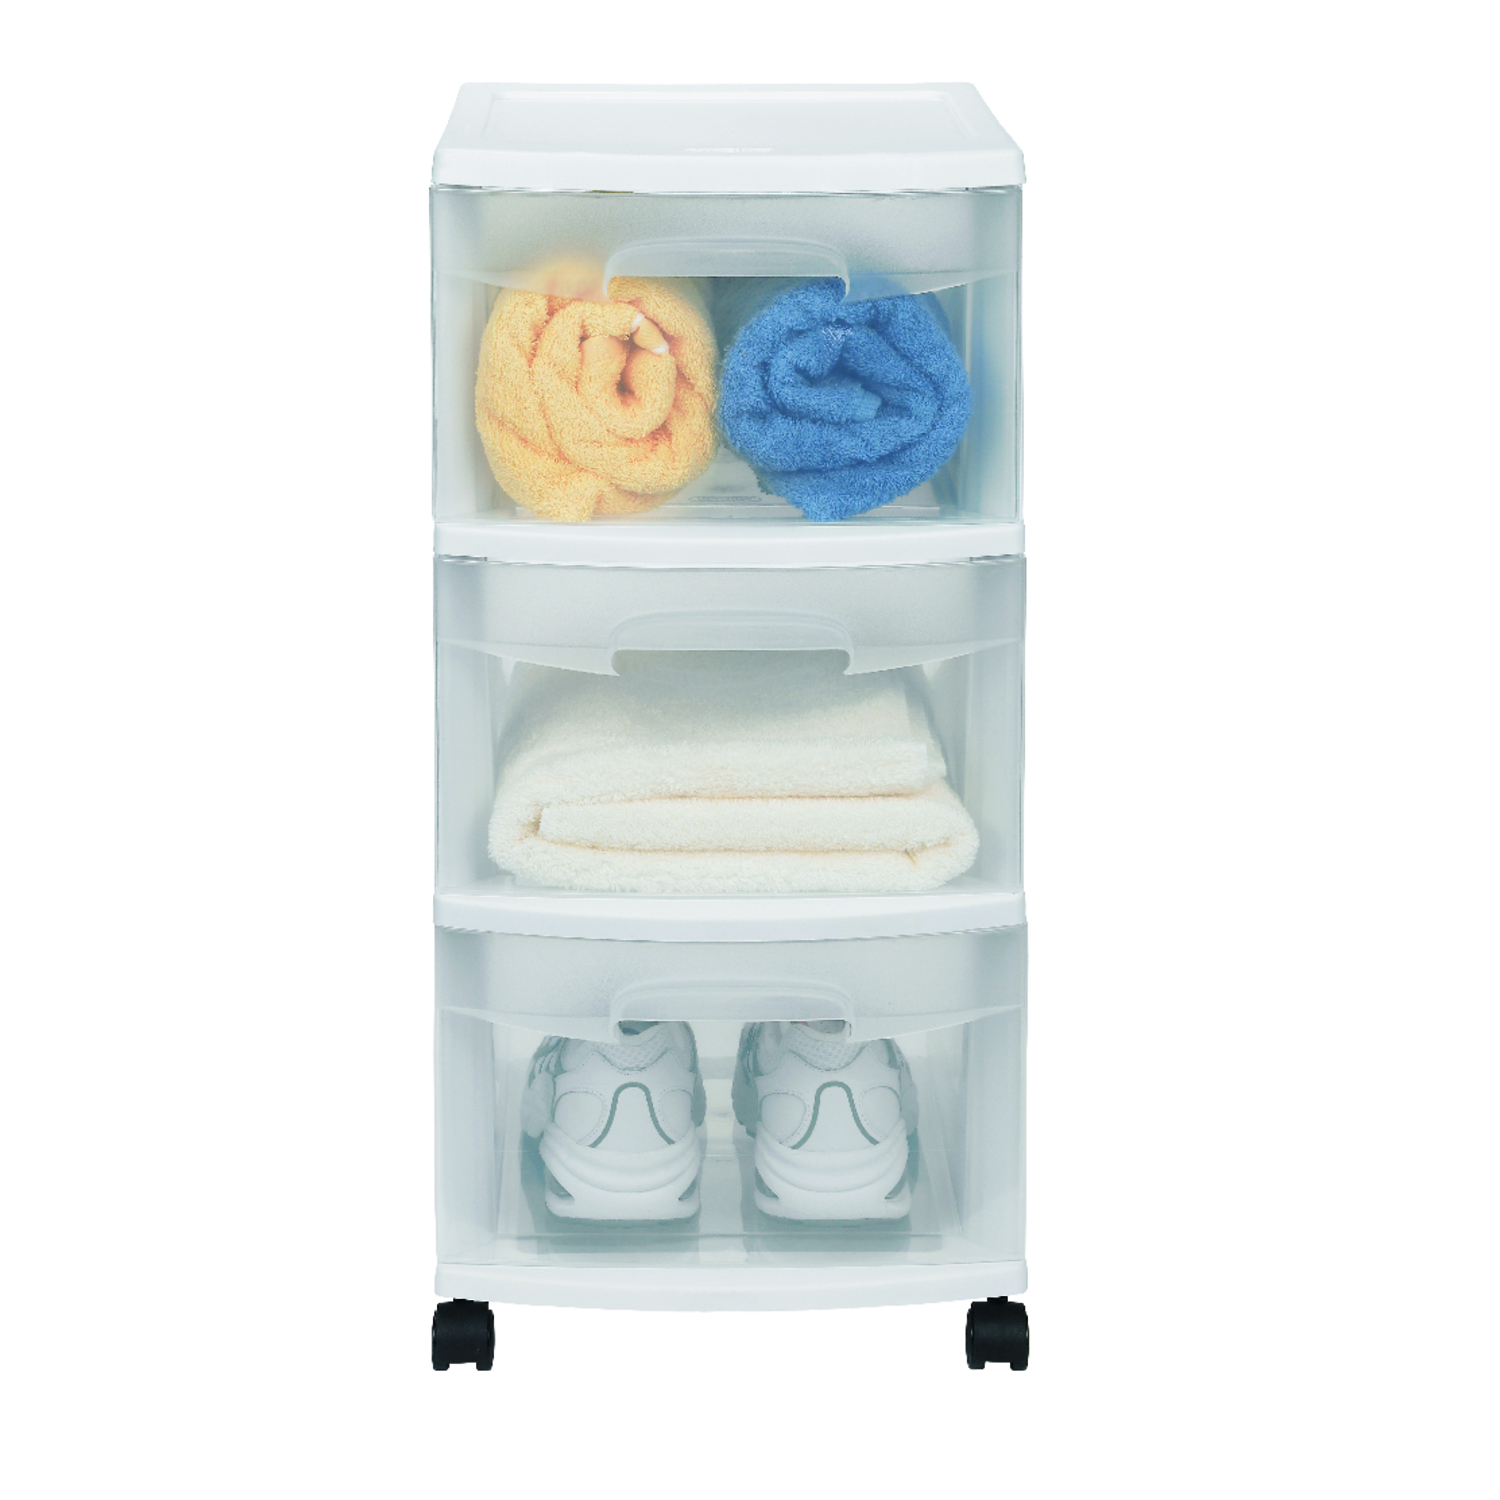 Sterilite 24 in. H x 12.625 in. W x 14.5 in. D Stackable Drawer ...